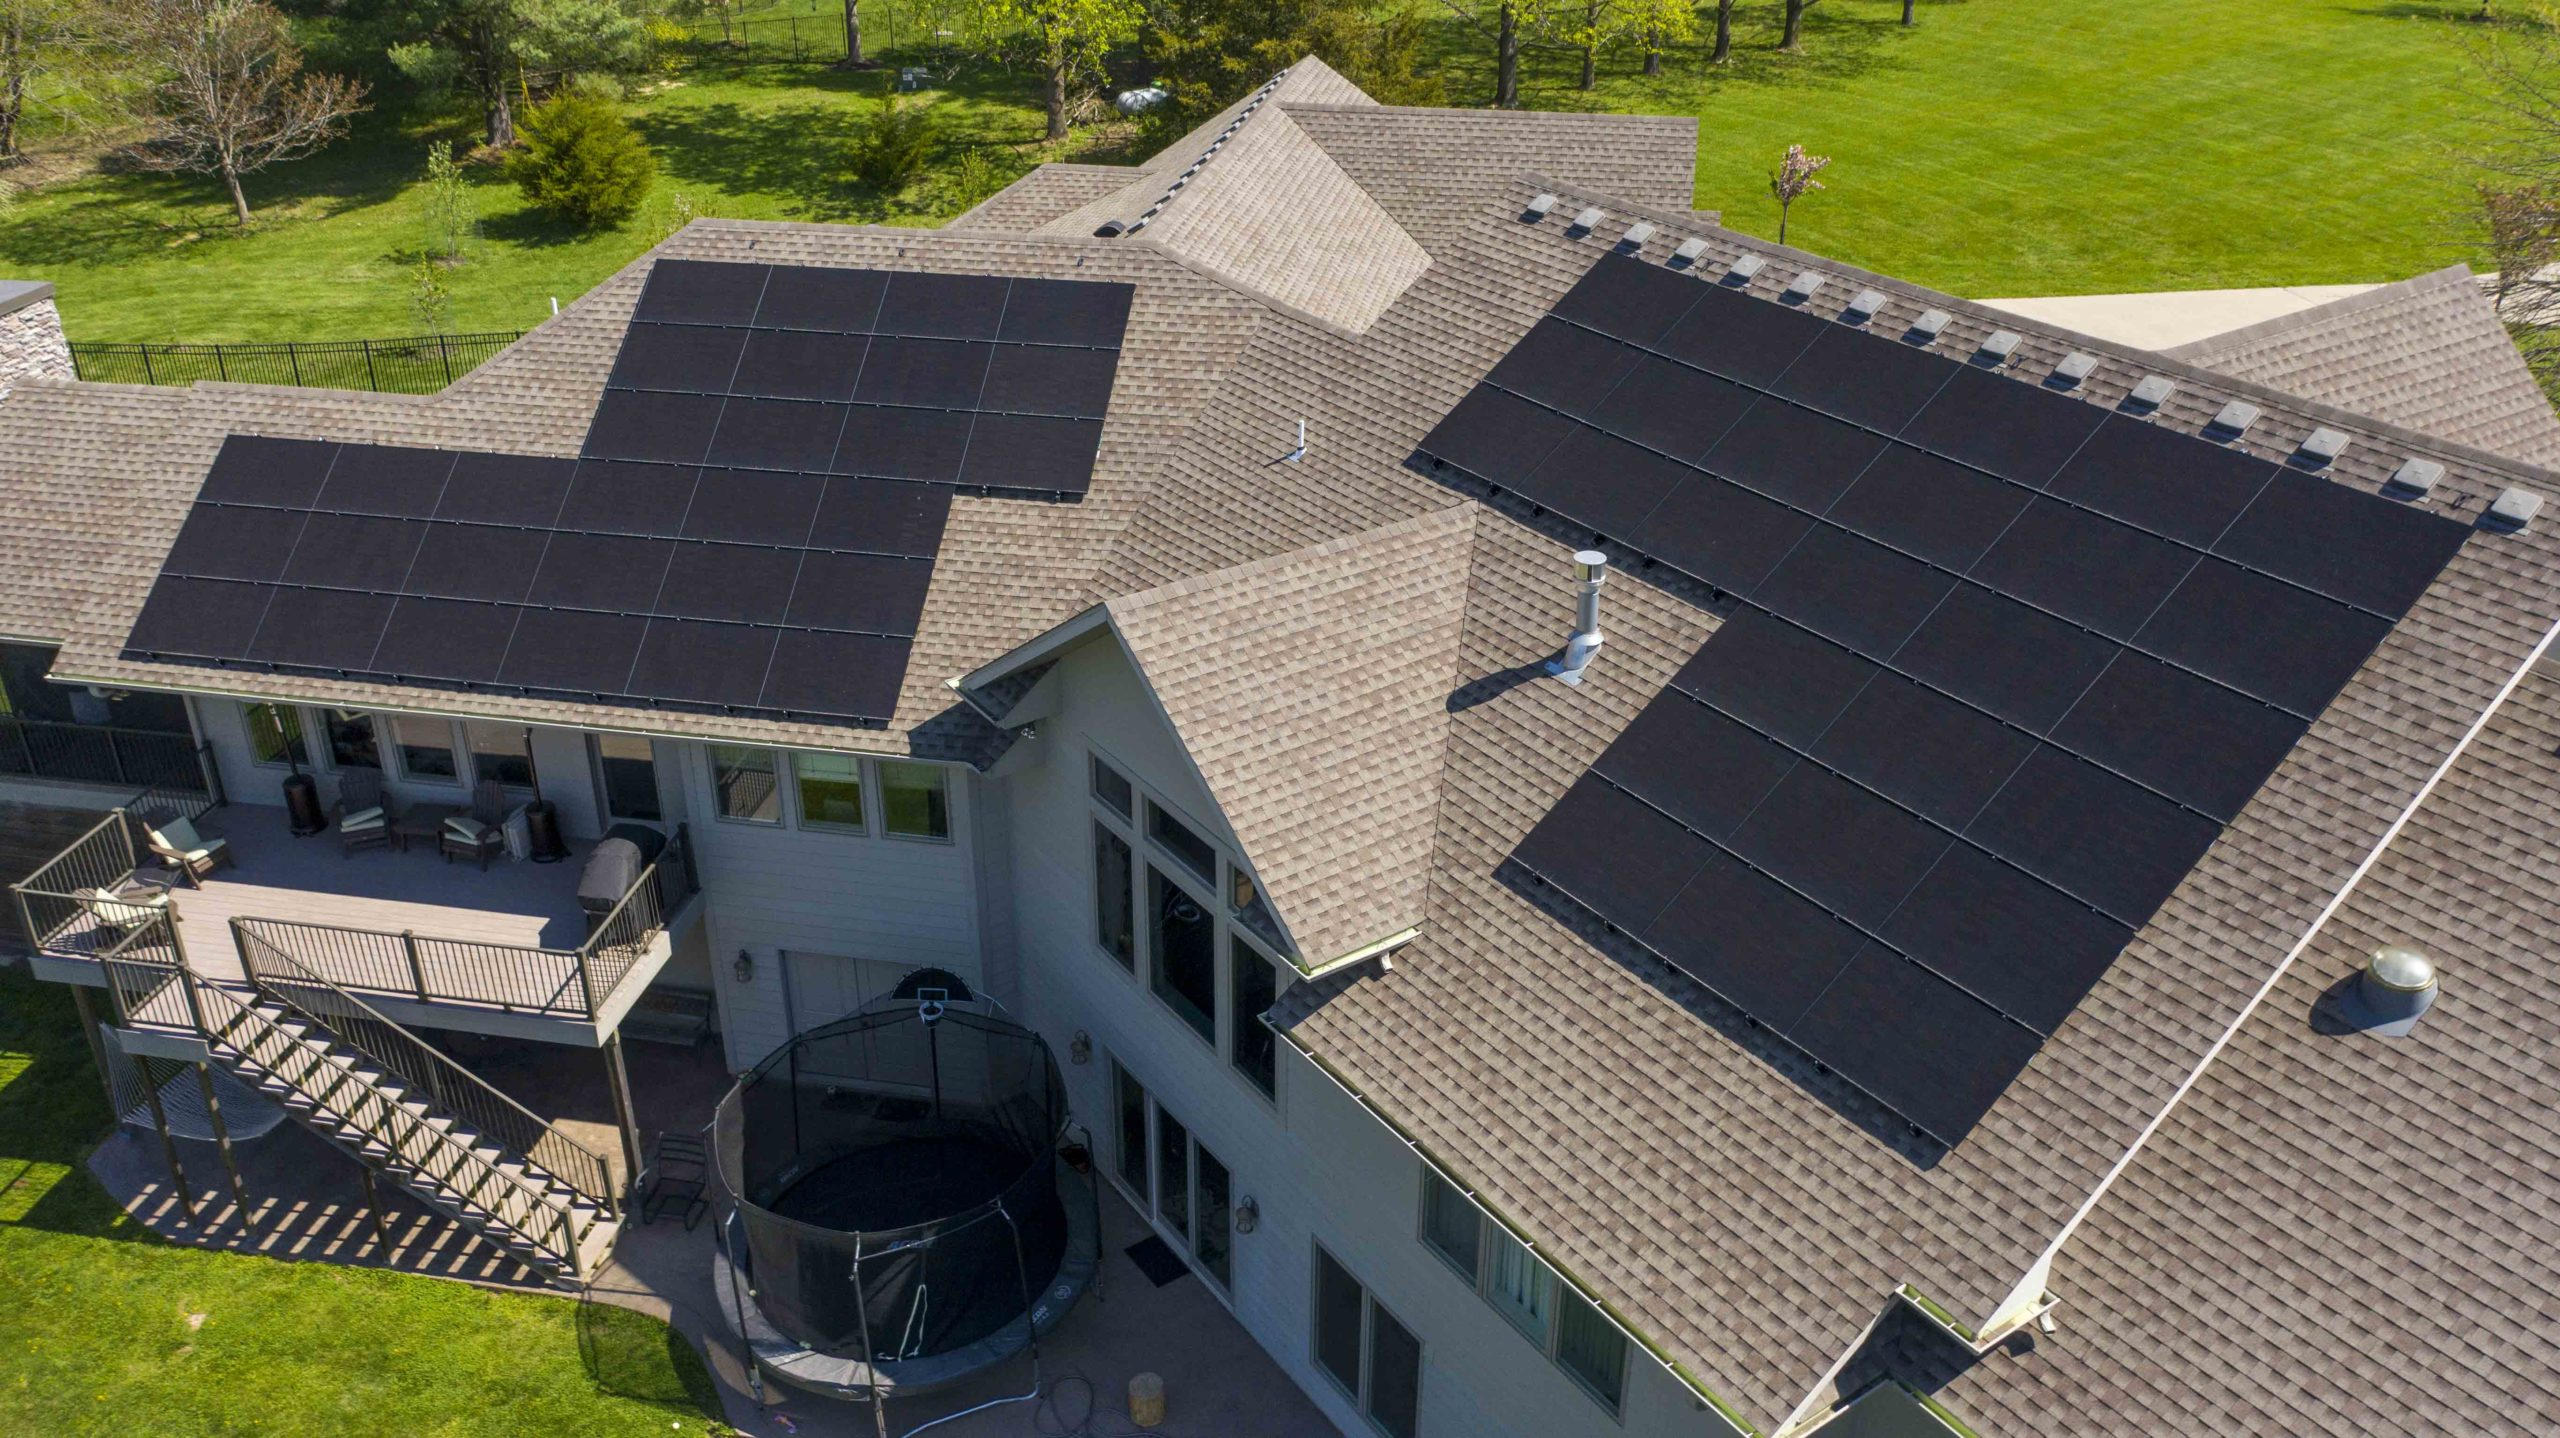 Beautiful solar panels provide a clean look to this solar install by Dogwood Solar.